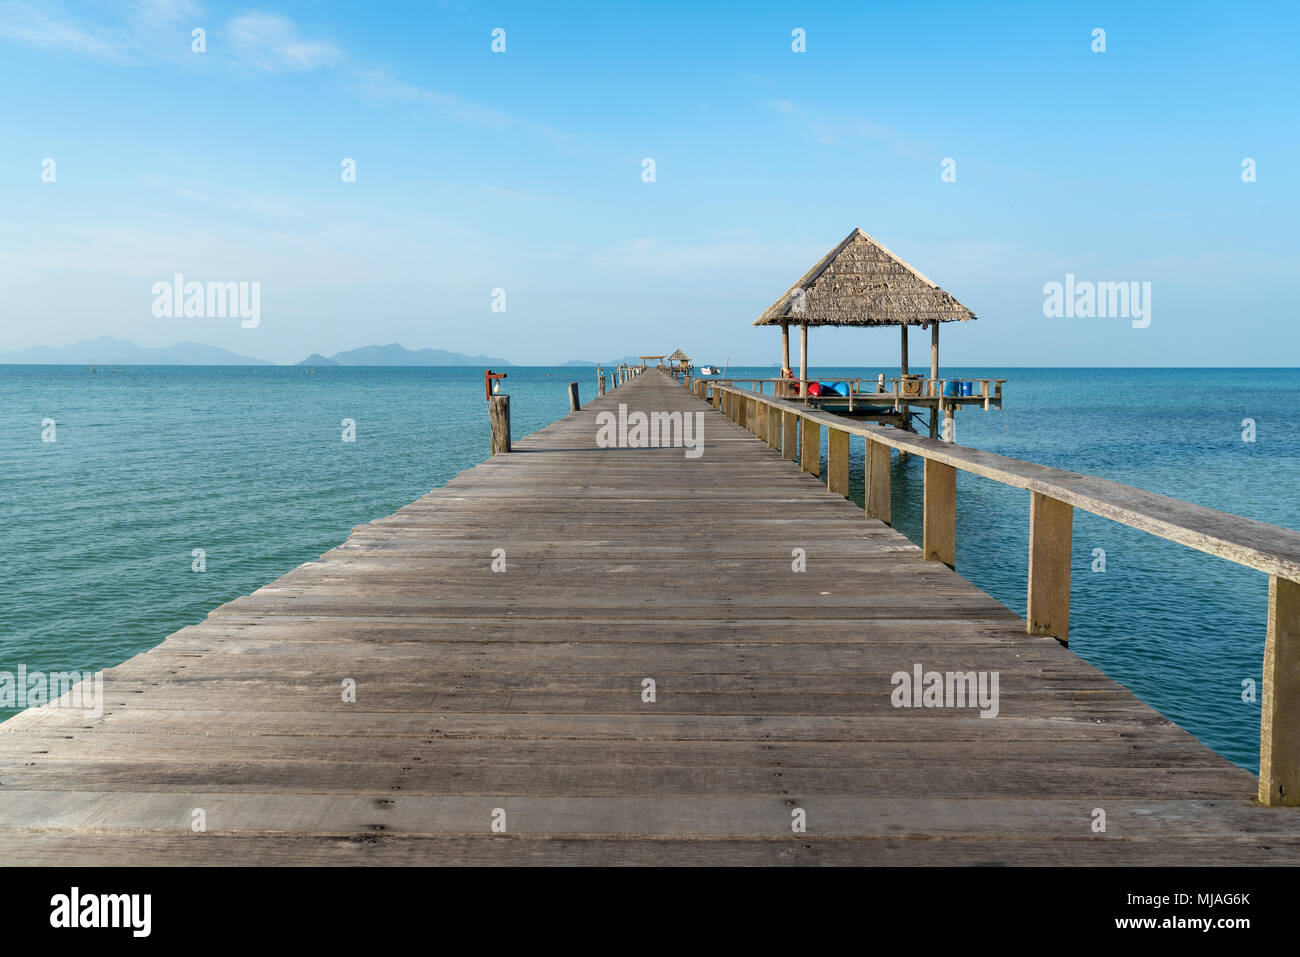 Wooden pier between sunset in Phuket, Thailand. Summer, Travel, Vacation and Holiday concept. - Stock Image